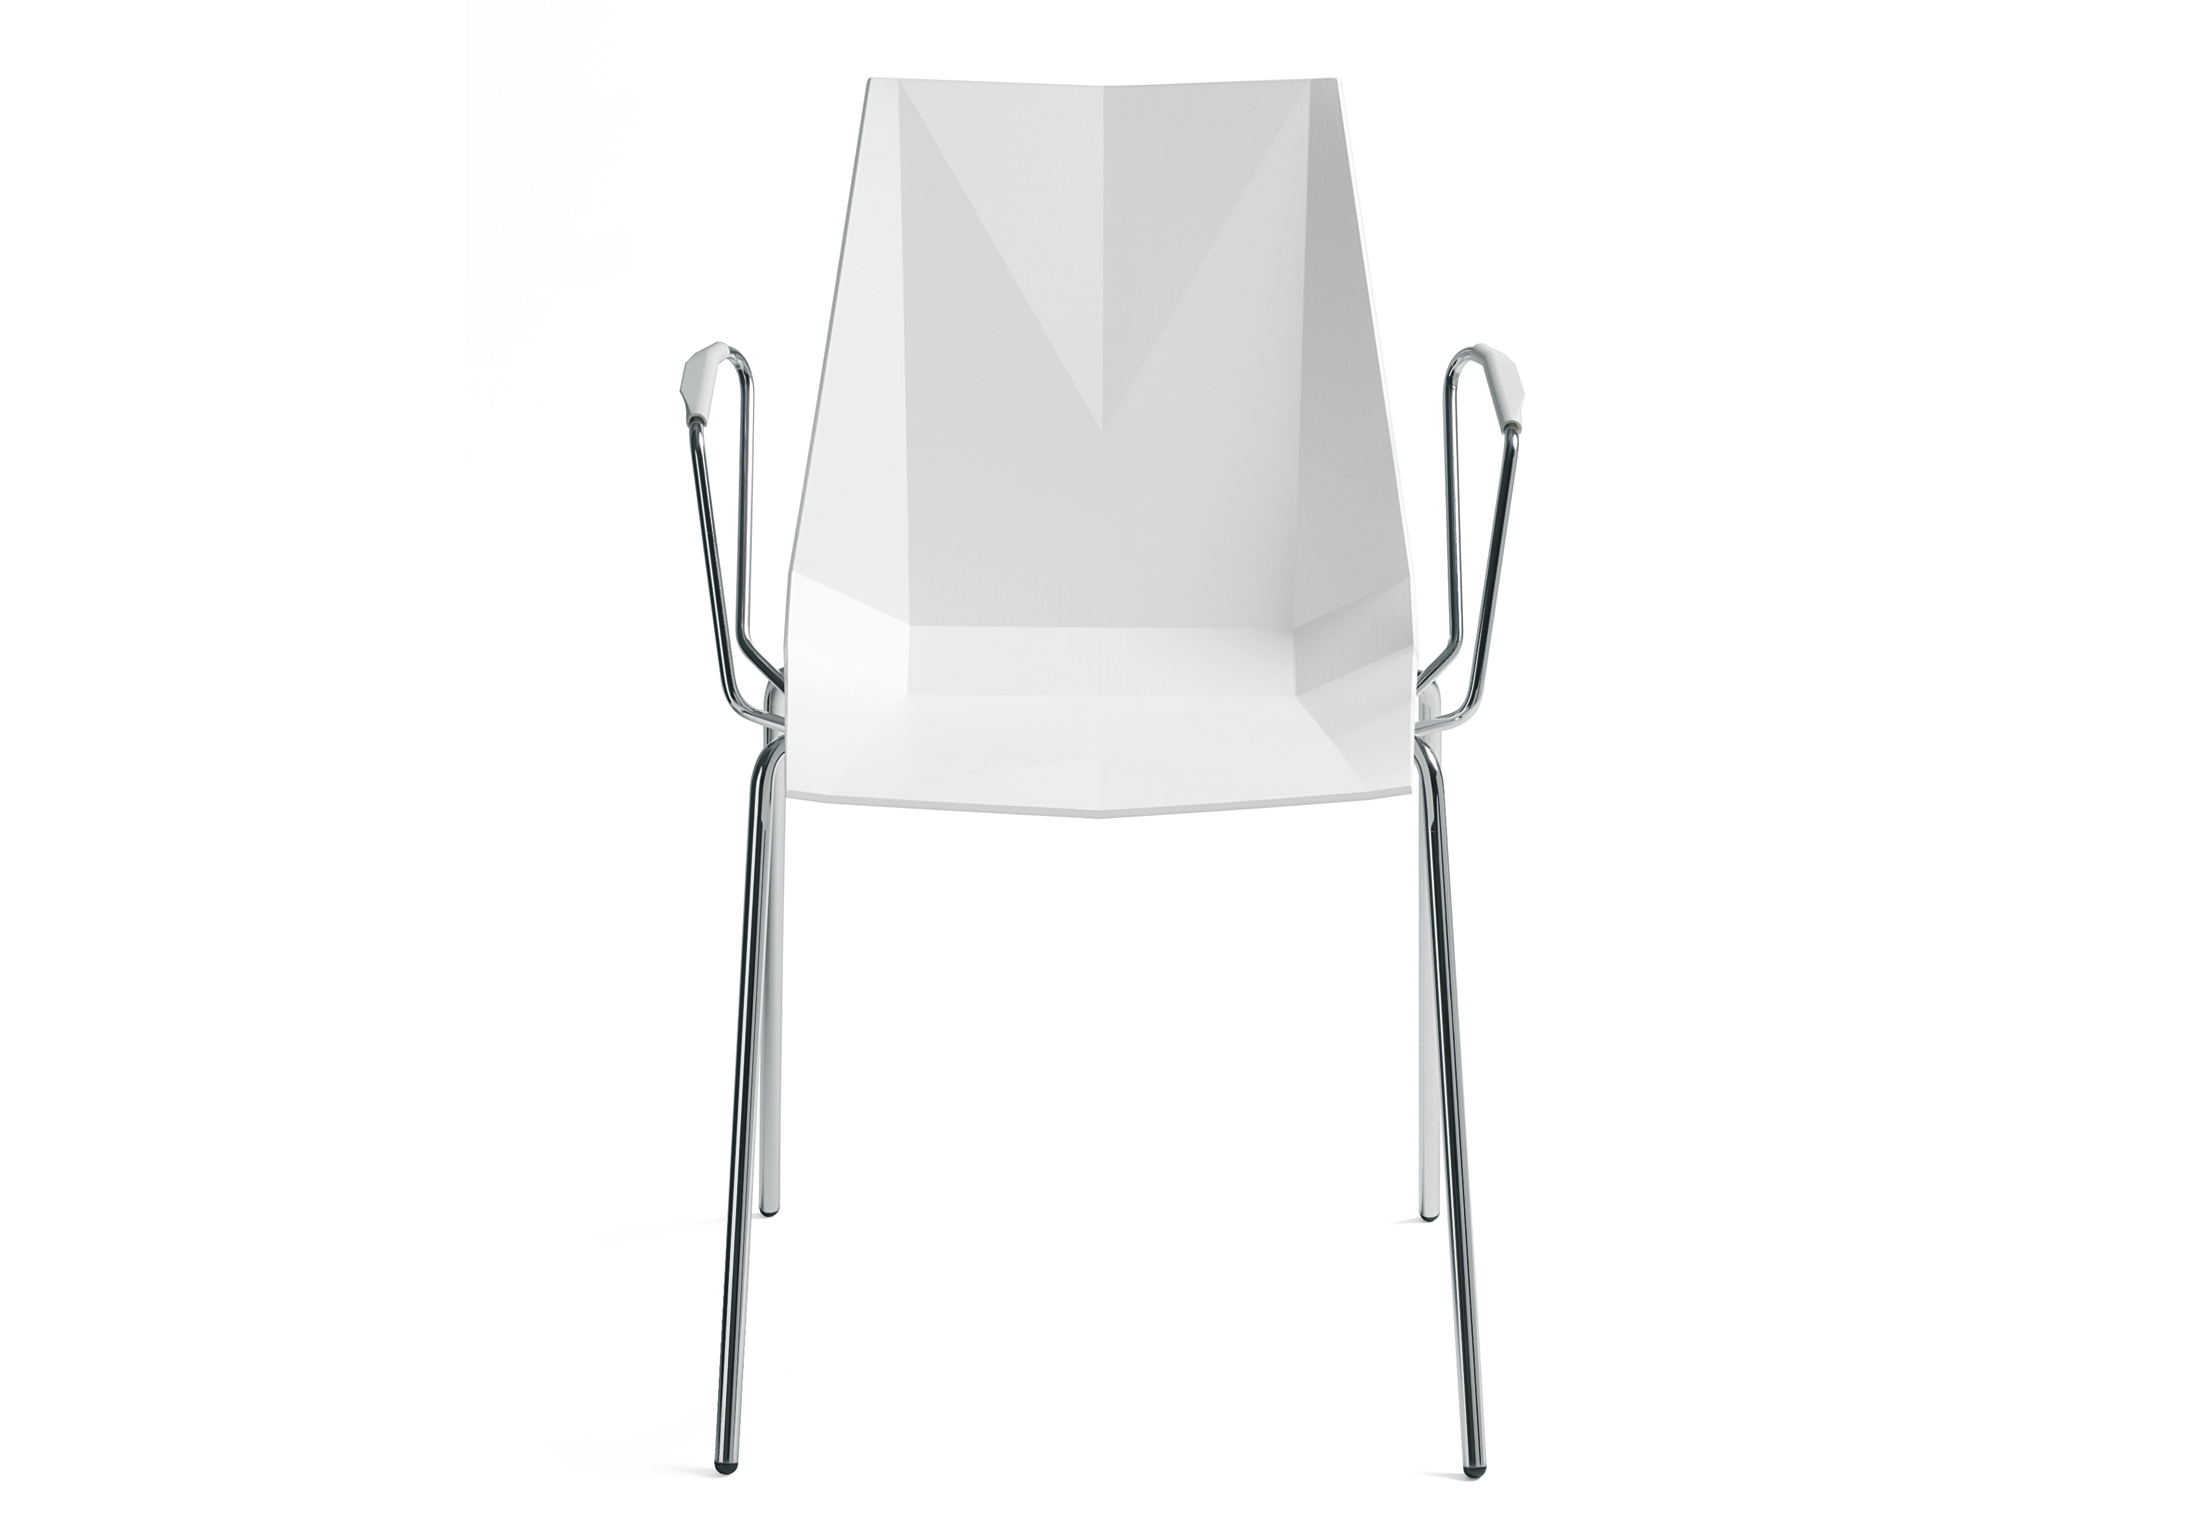 Mayflower Plastic Chair With Armrest By Materia Stylepark